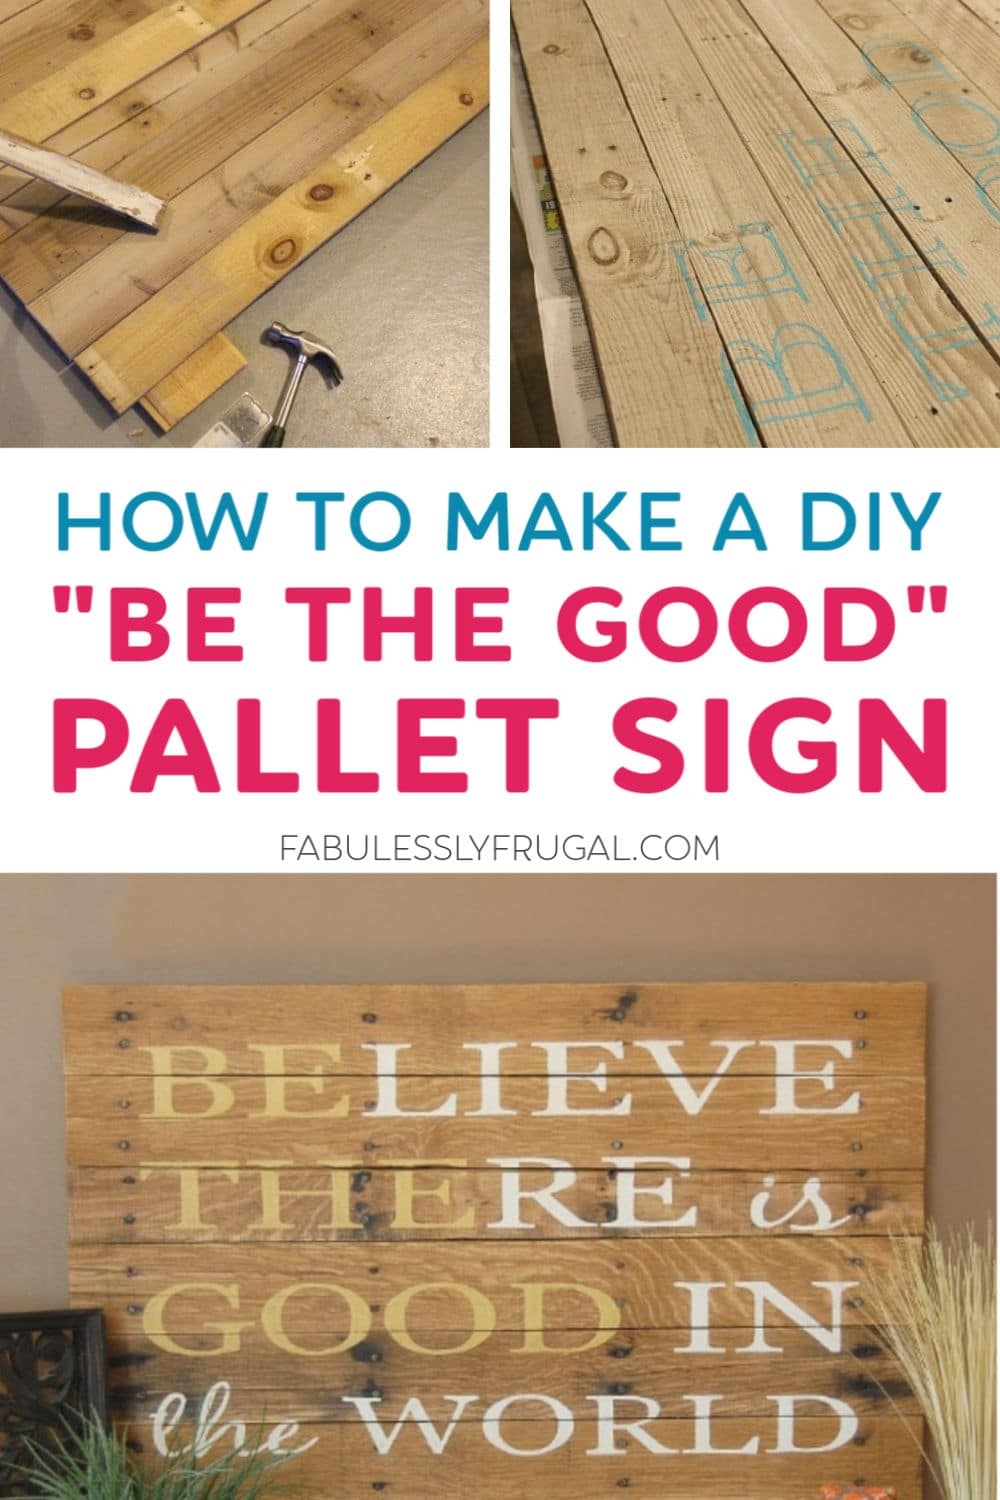 How to make a DIY pallet sign